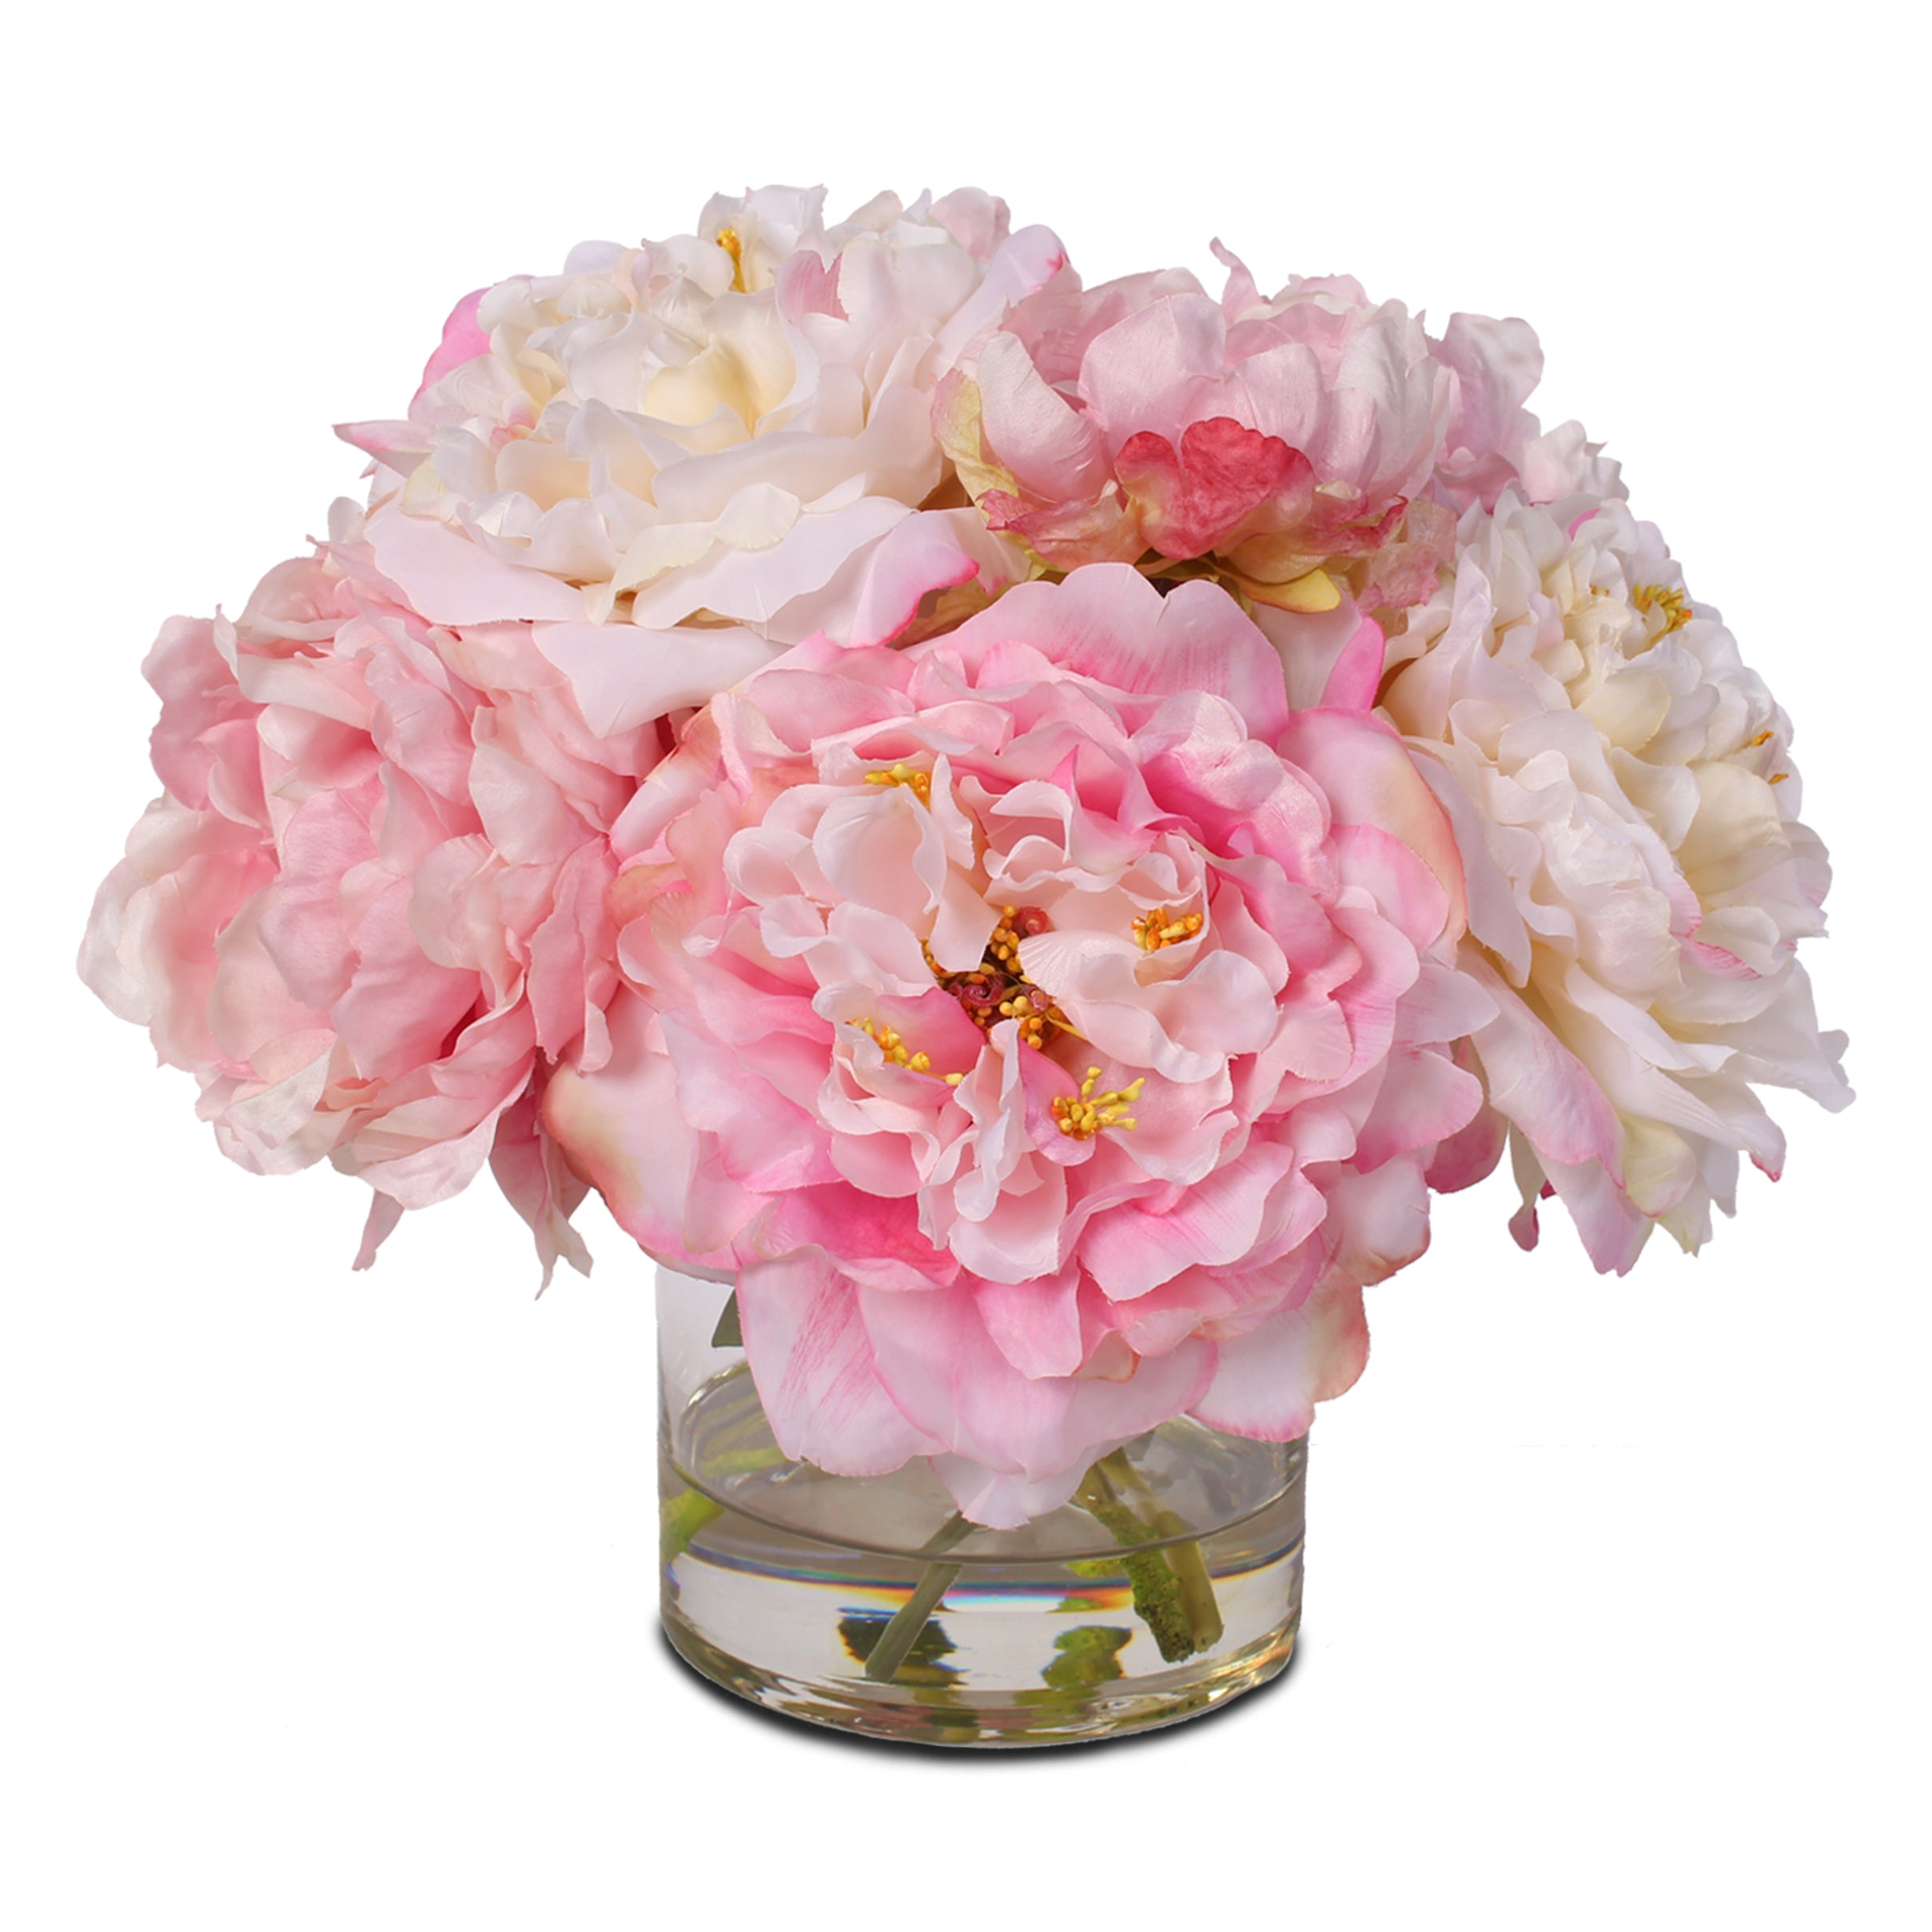 Silk French Peonies Bouquet In Glass Vase With Fake Water 46